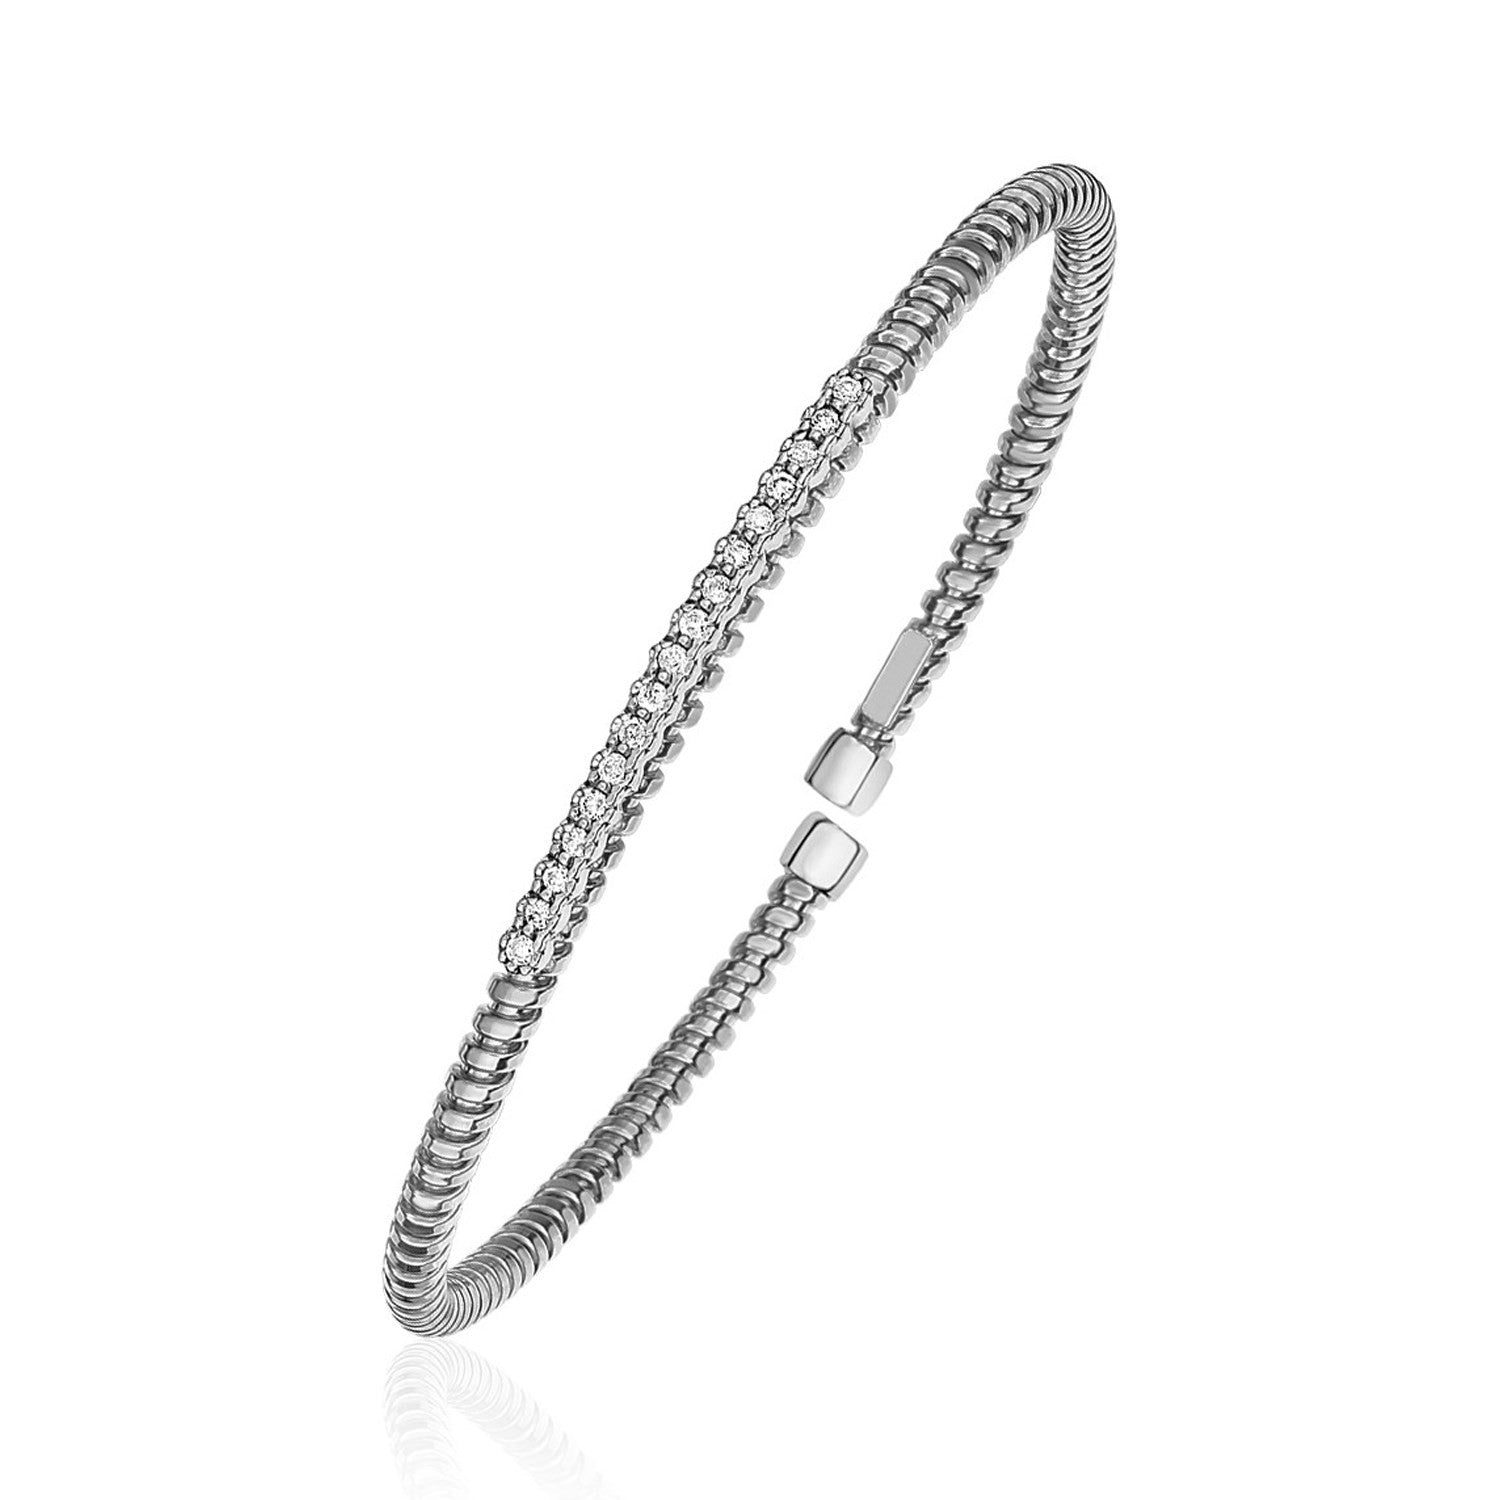 diamond bracelet with bangles closure box yellow pin and bangle clasp white gold accents